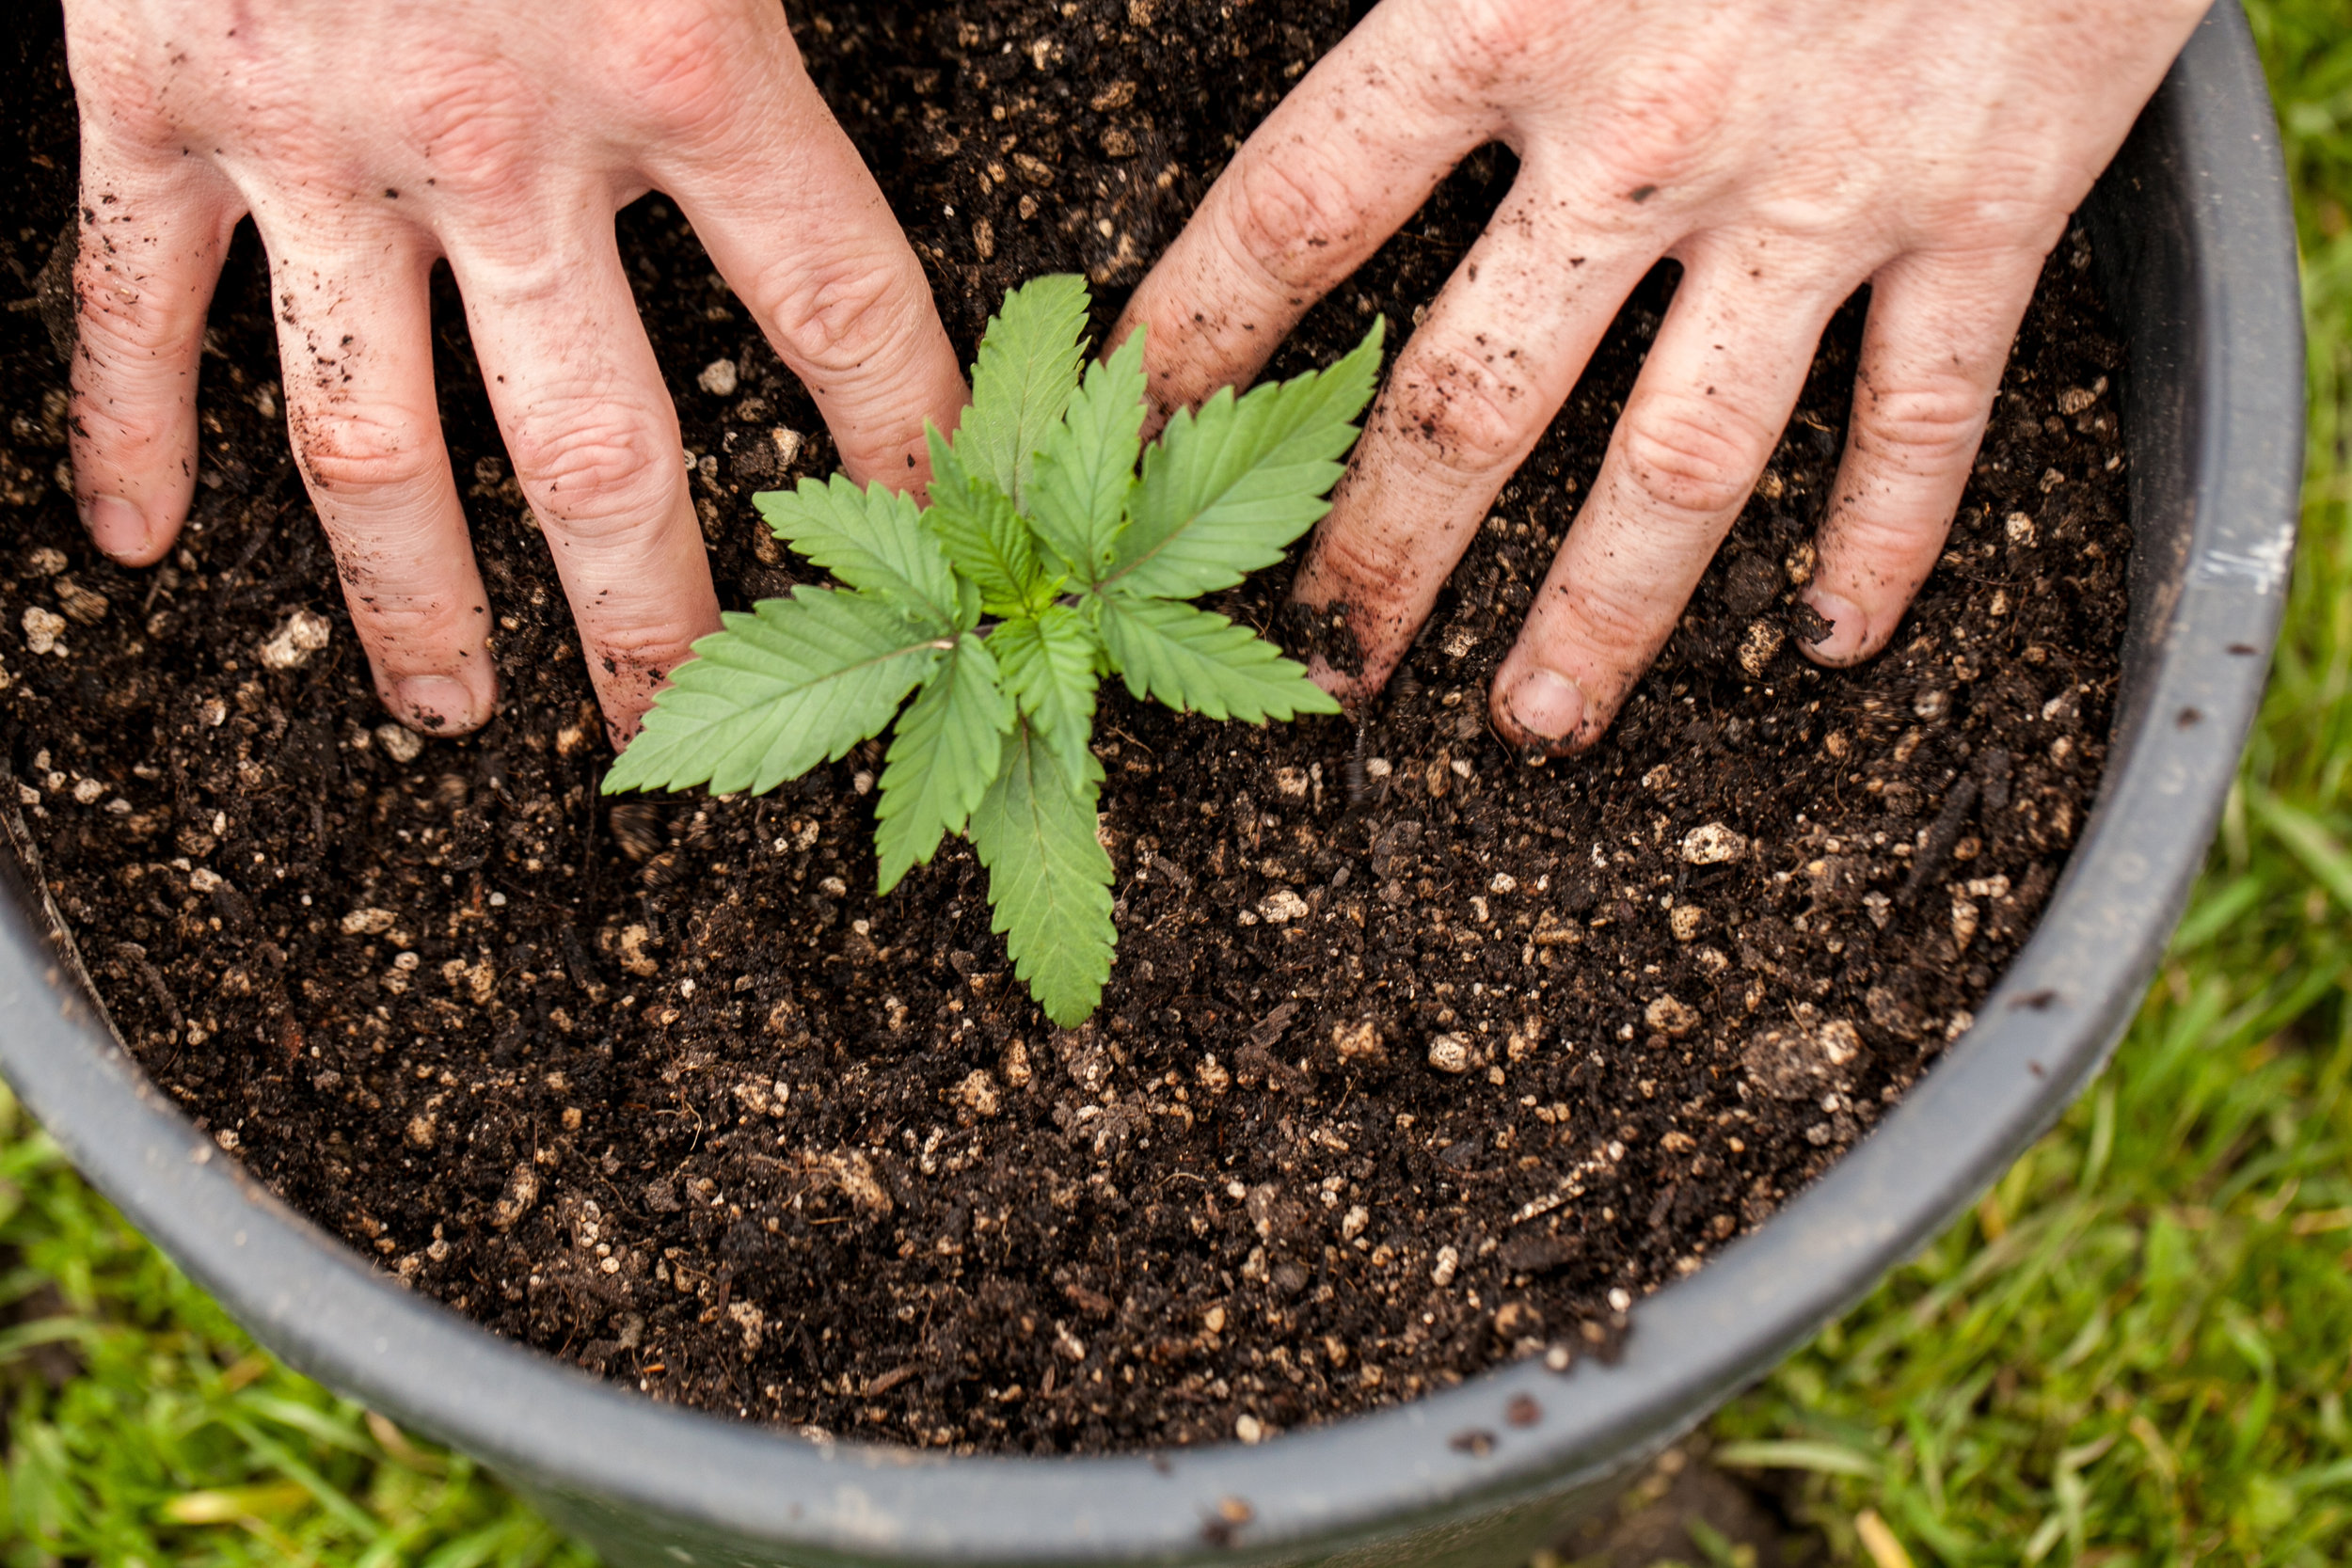 Become a member of Curative Care & save money by growing your Cannabis! -